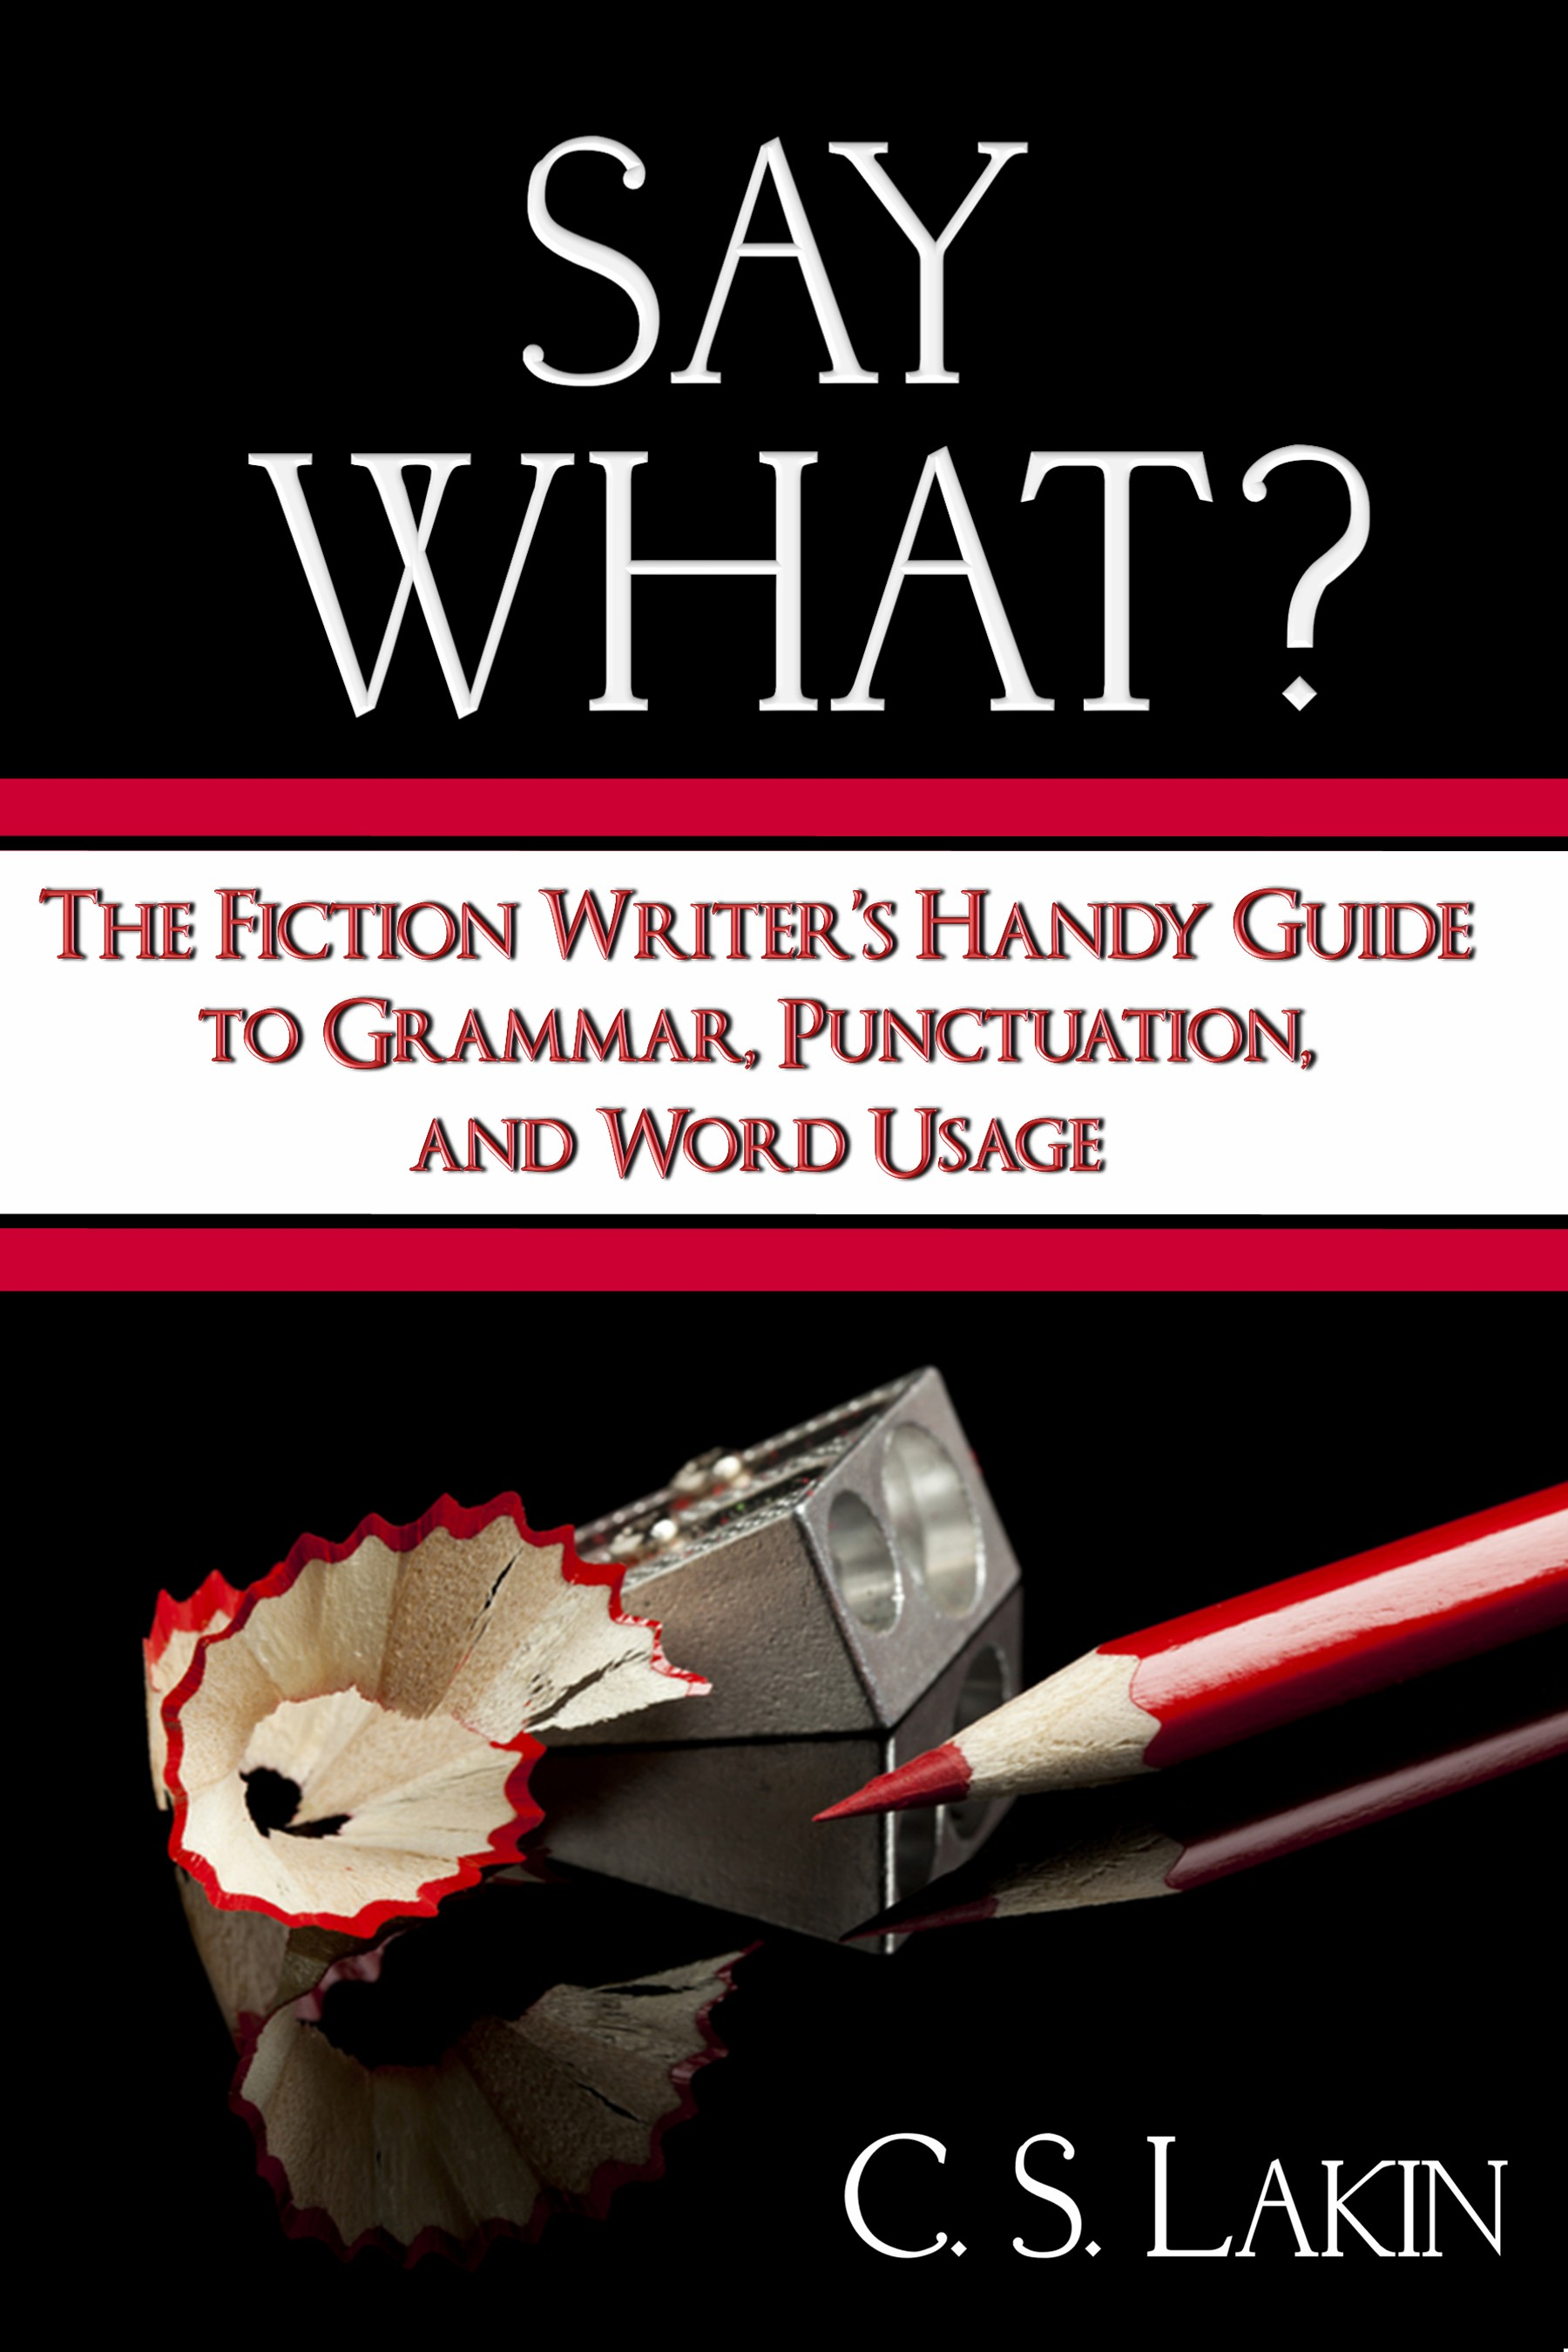 Say What? The Fiction Writer's Handy Guide to Grammar, Punctuation, and Word Usage